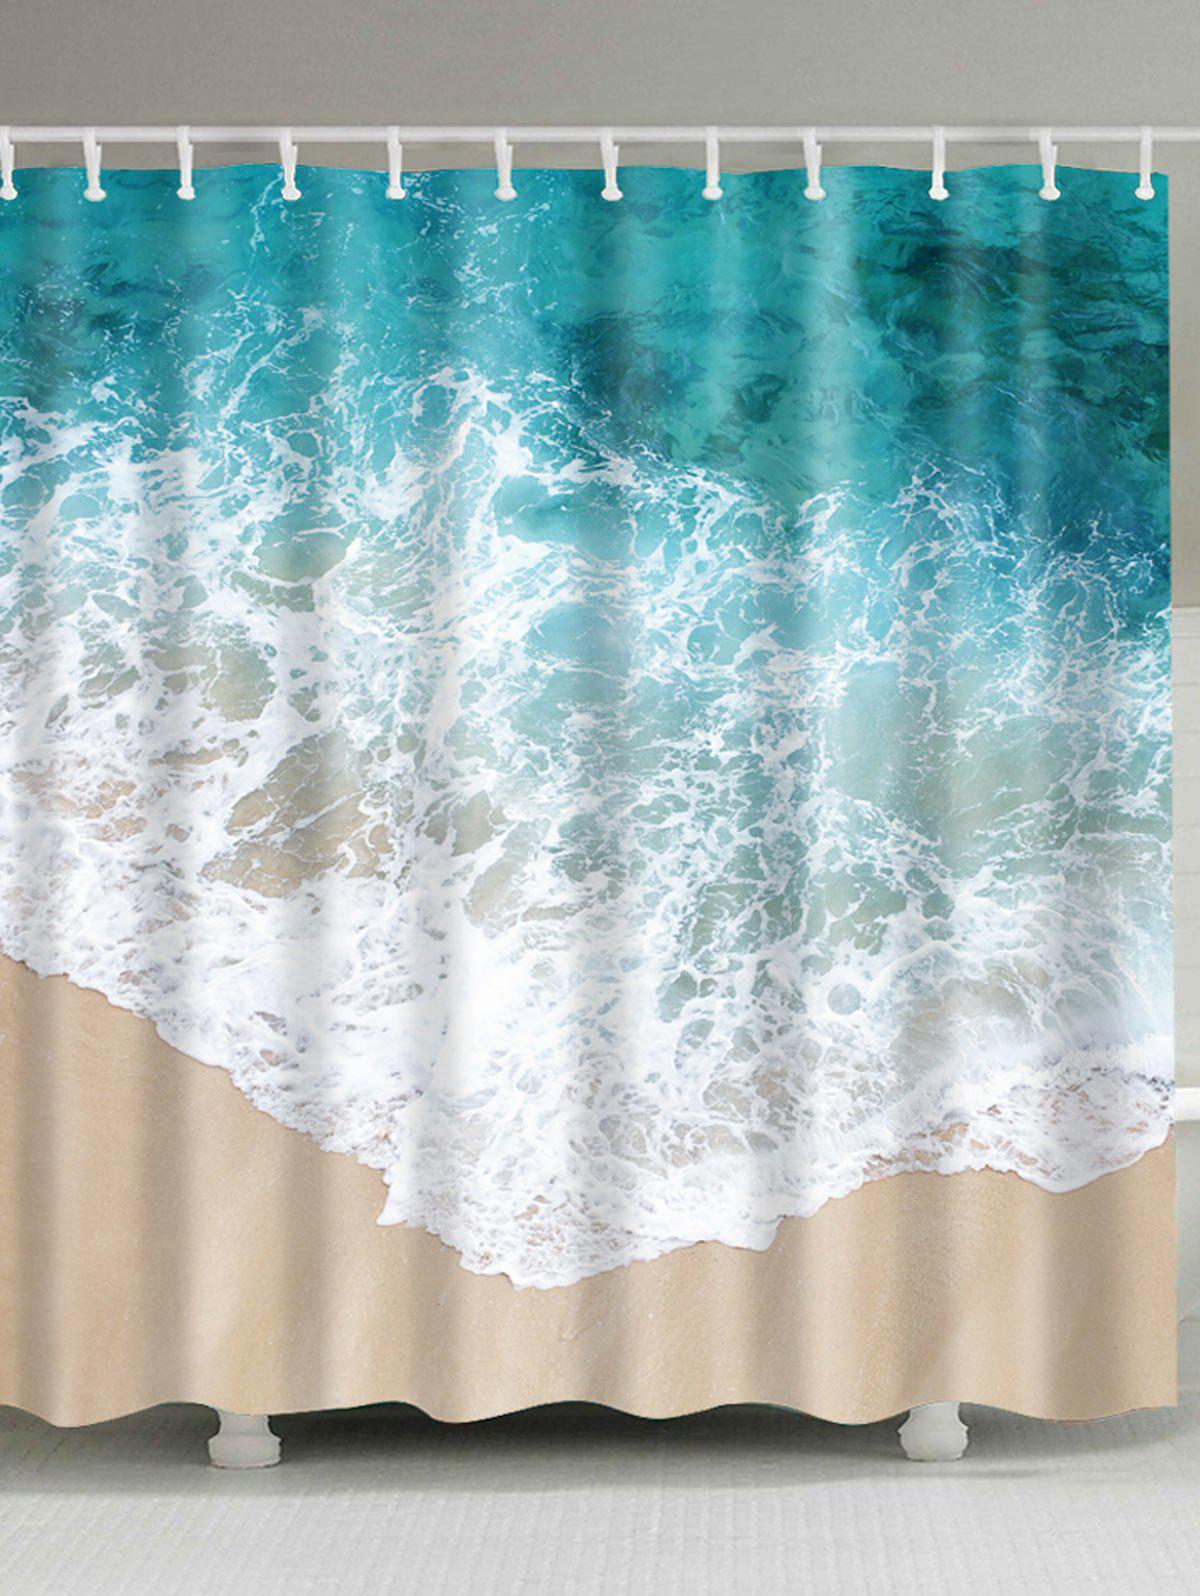 Waterproof Sea Wave Bathroom Shower CurtainHOME<br><br>Size: W71 INCH * L79 INCH; Color: COLORMIX; Products Type: Shower Curtains; Materials: Polyester; Pattern: Scenic; Style: Beach Style; Number of Hook Holes: W59 inch*L71 inch: 10; W71 inch*L71 inch: 12; W71 inch*L79 inch: 12; Package Contents: 1 x Shower Curtain 1 x Hooks (Set);